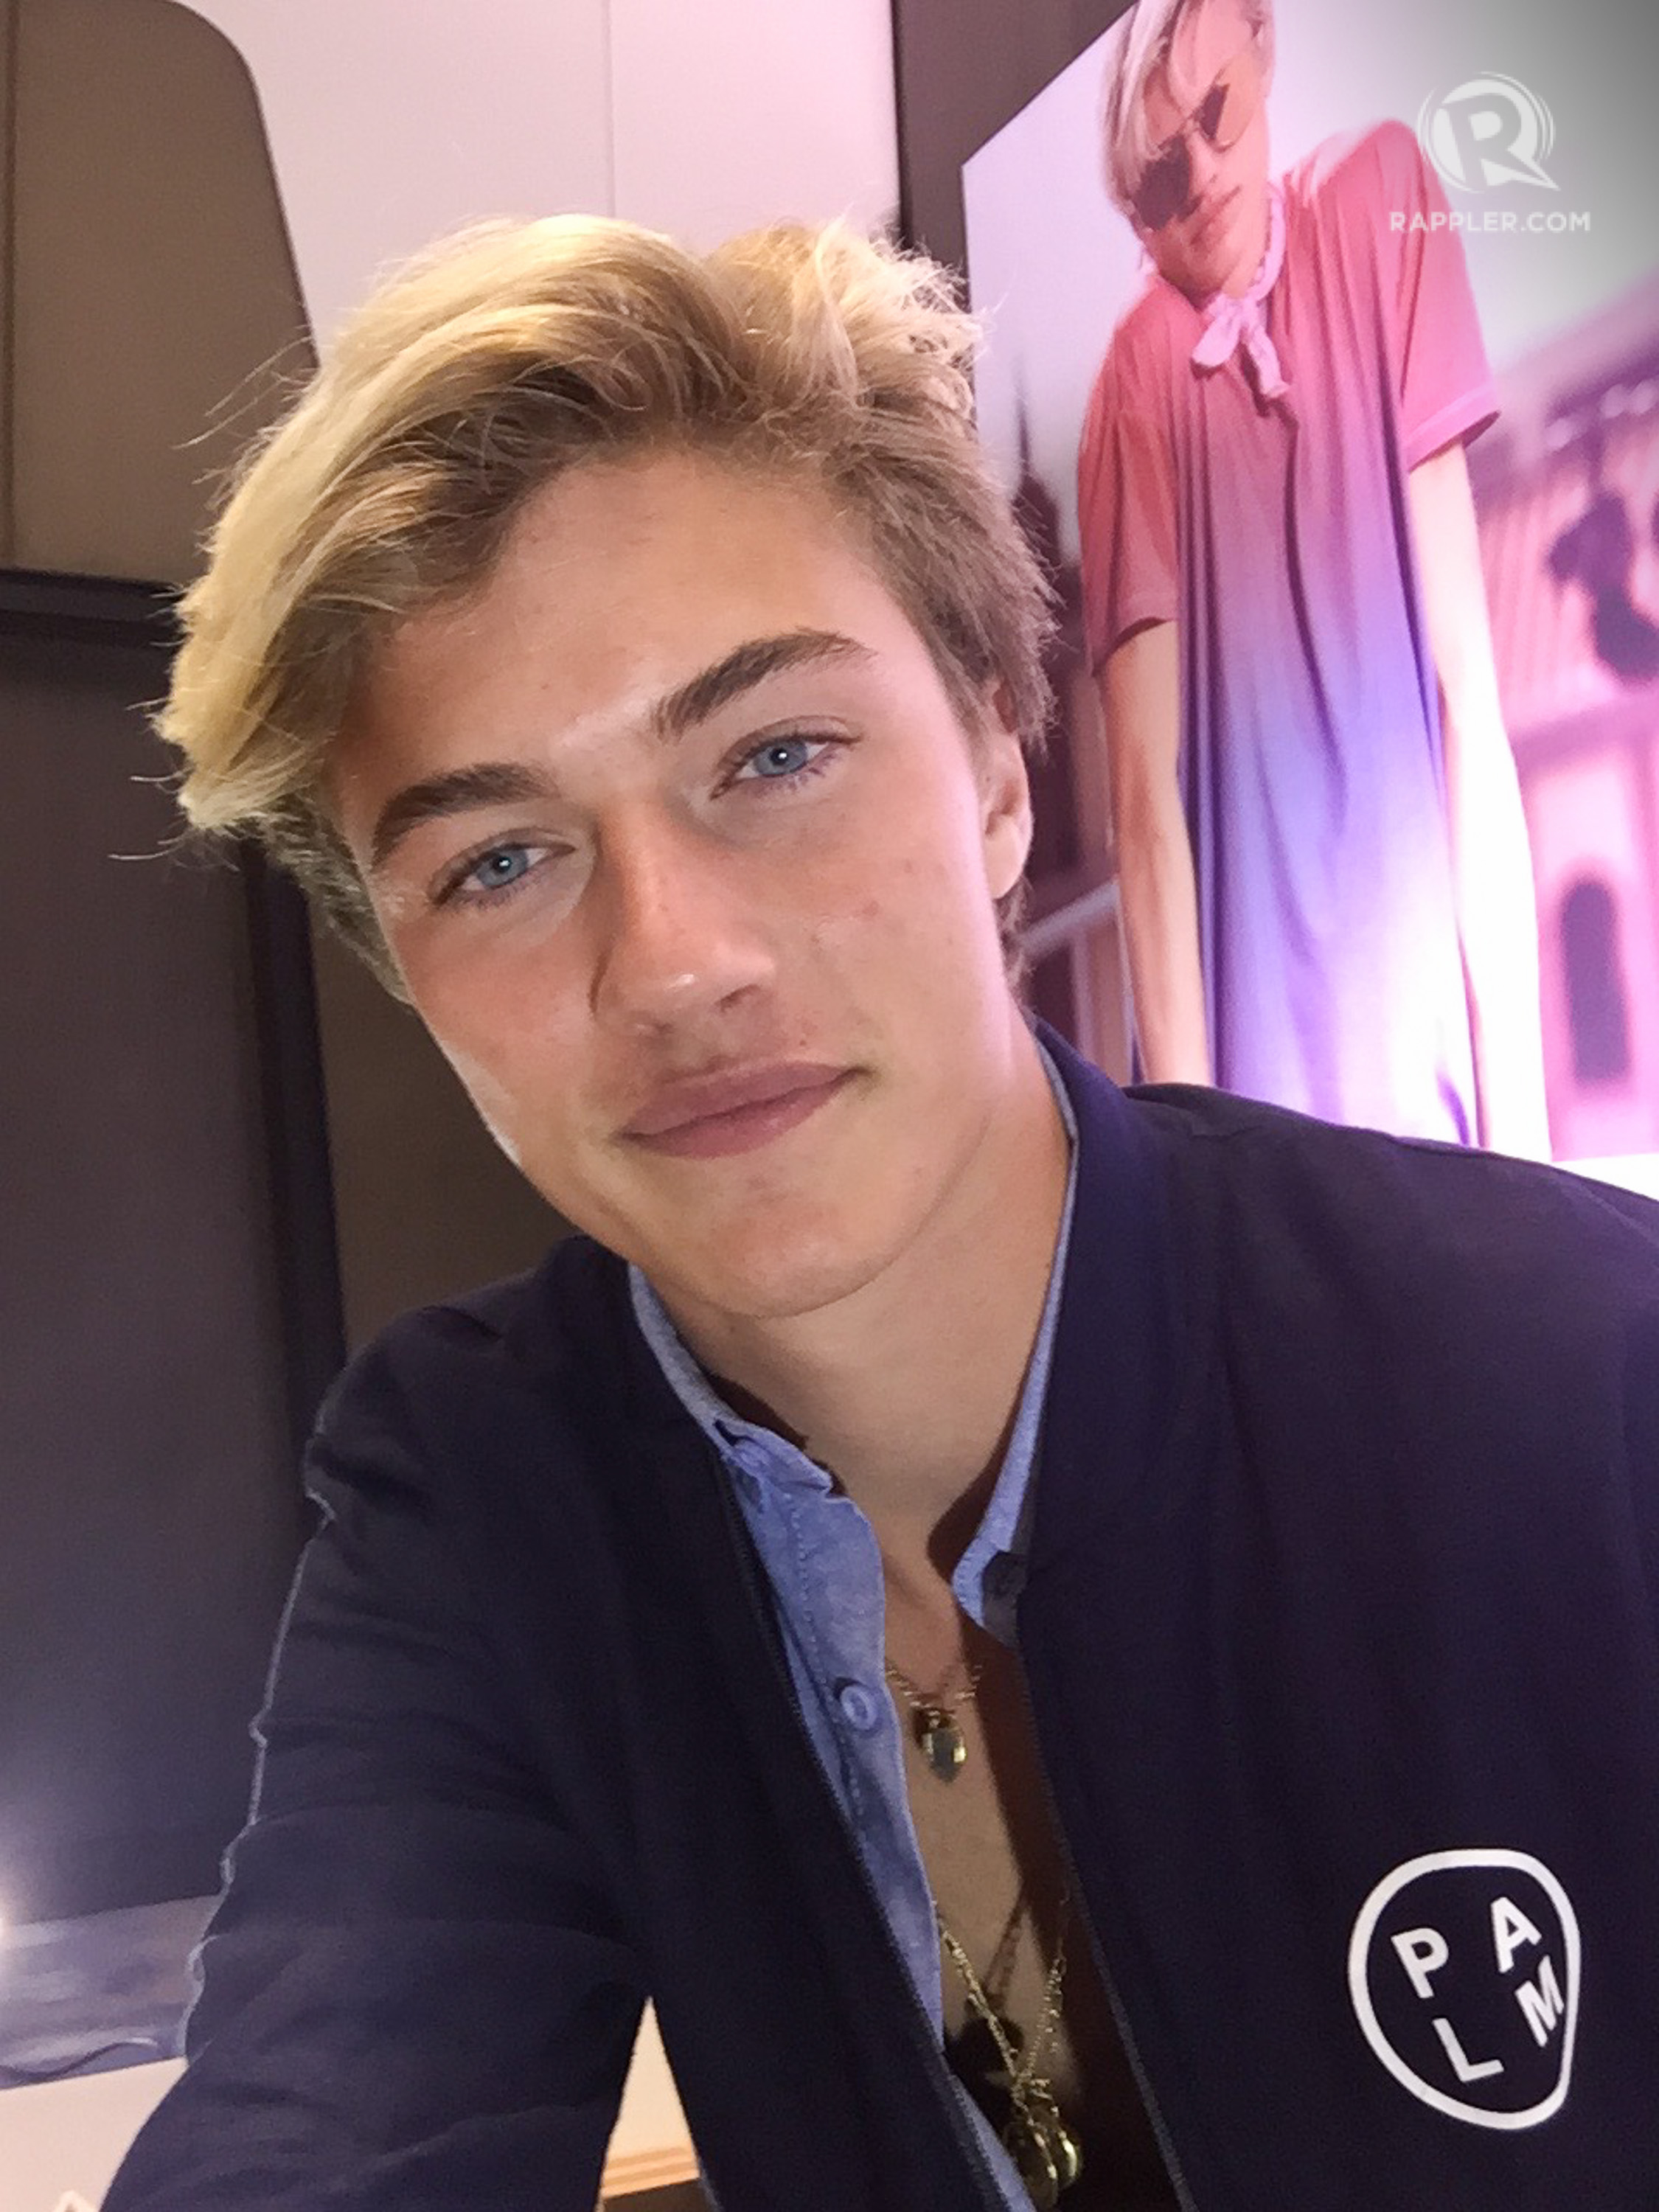 Supermodel Lucky Blue Smith S Top Tip For Taking The Perfect Selfie